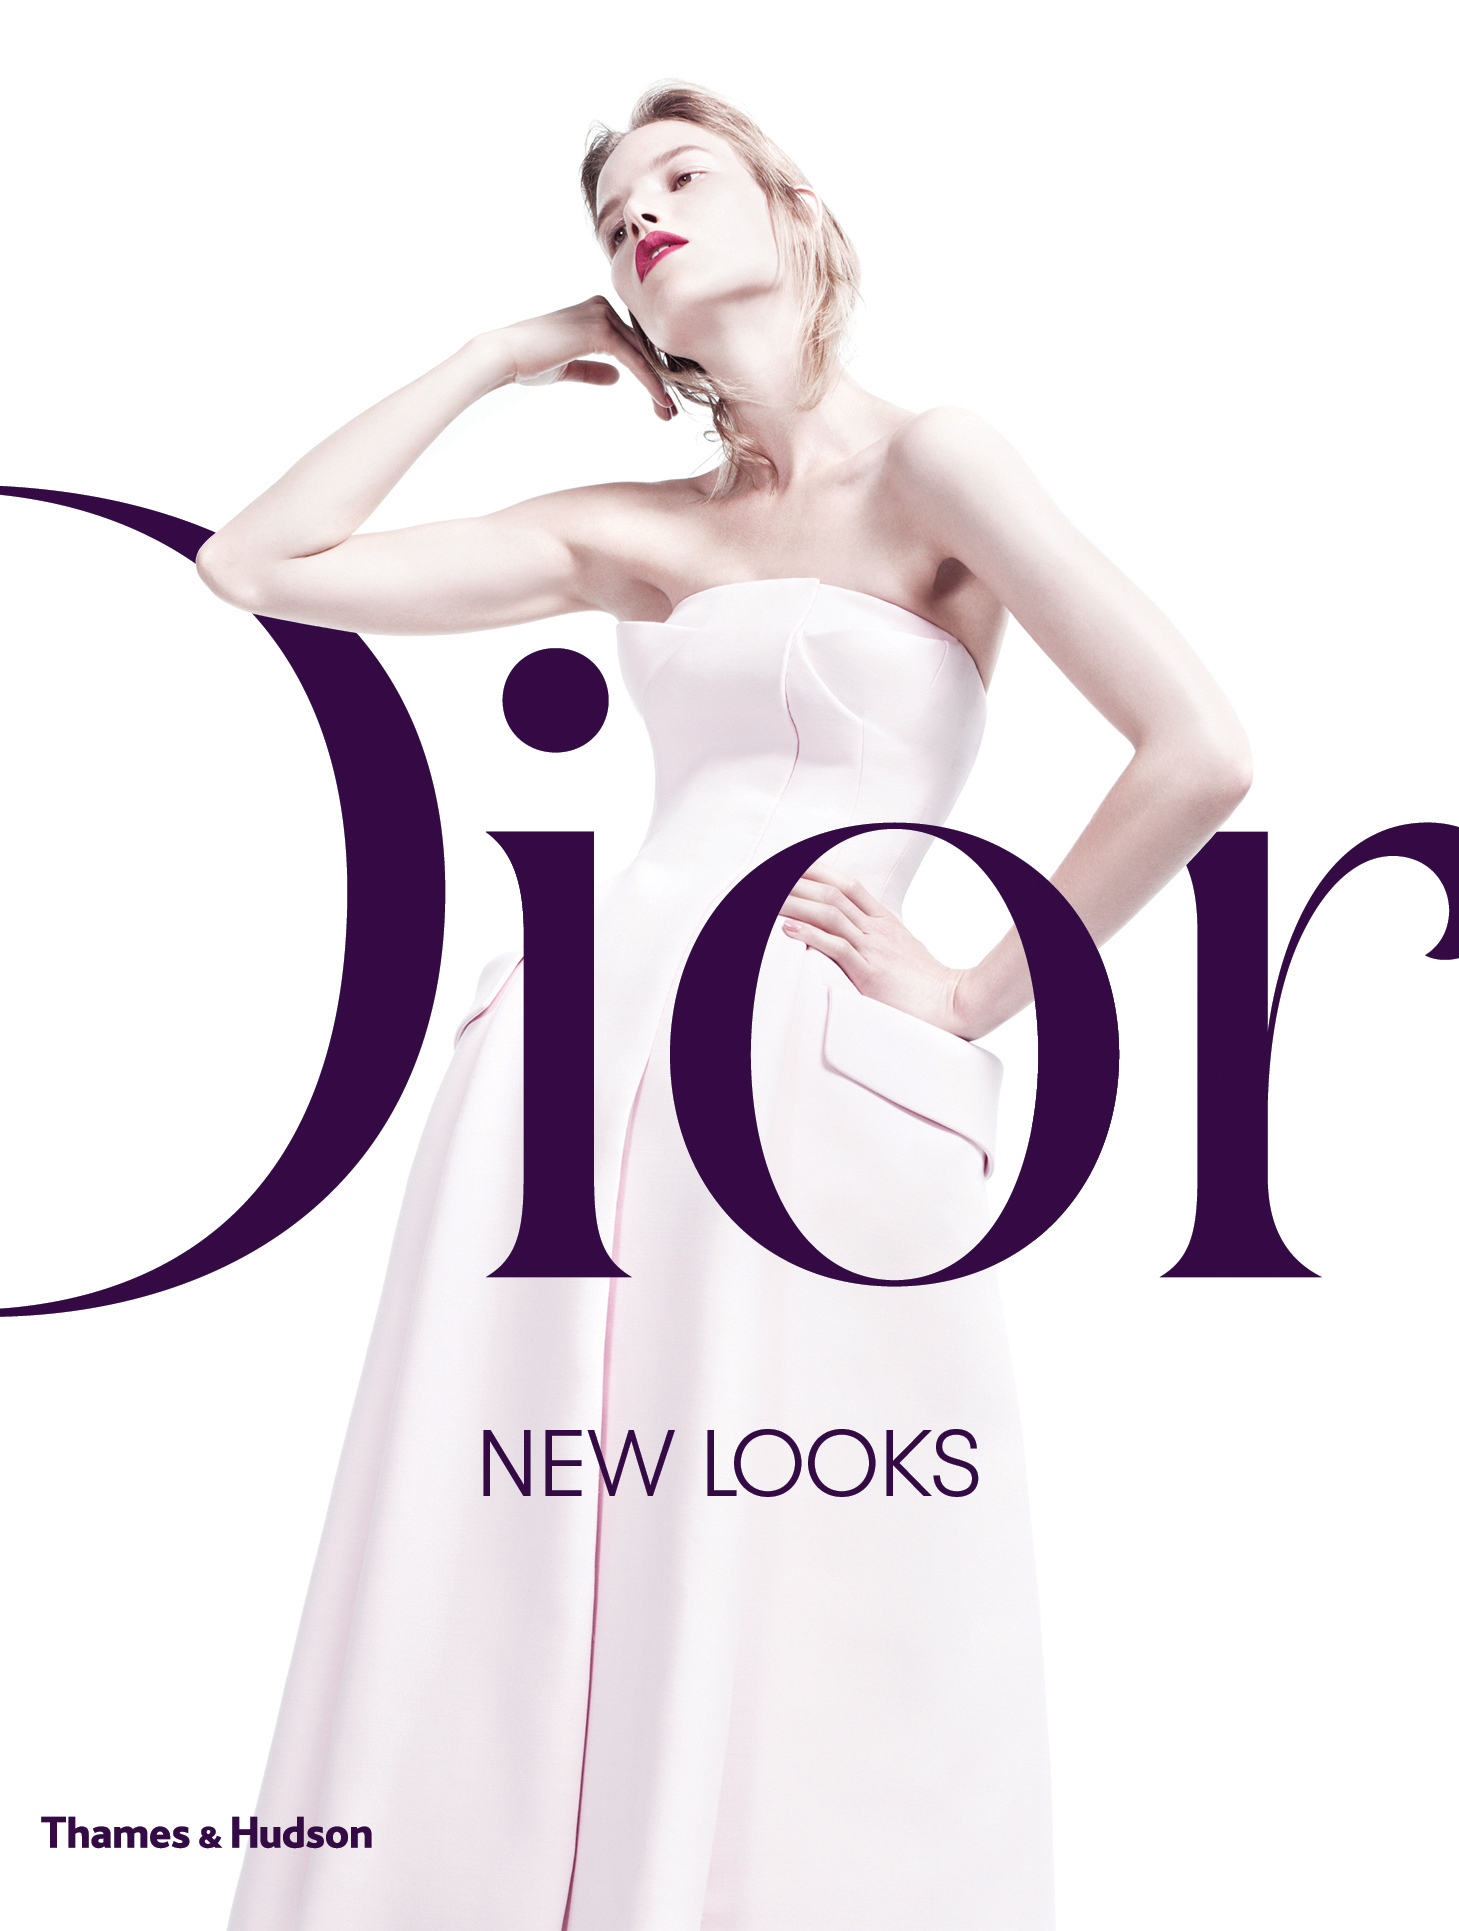 01_cover - Willy Vanderperre, 2012. Christian Dior Haute Couture by Raf Simons, autumn-winter 2012